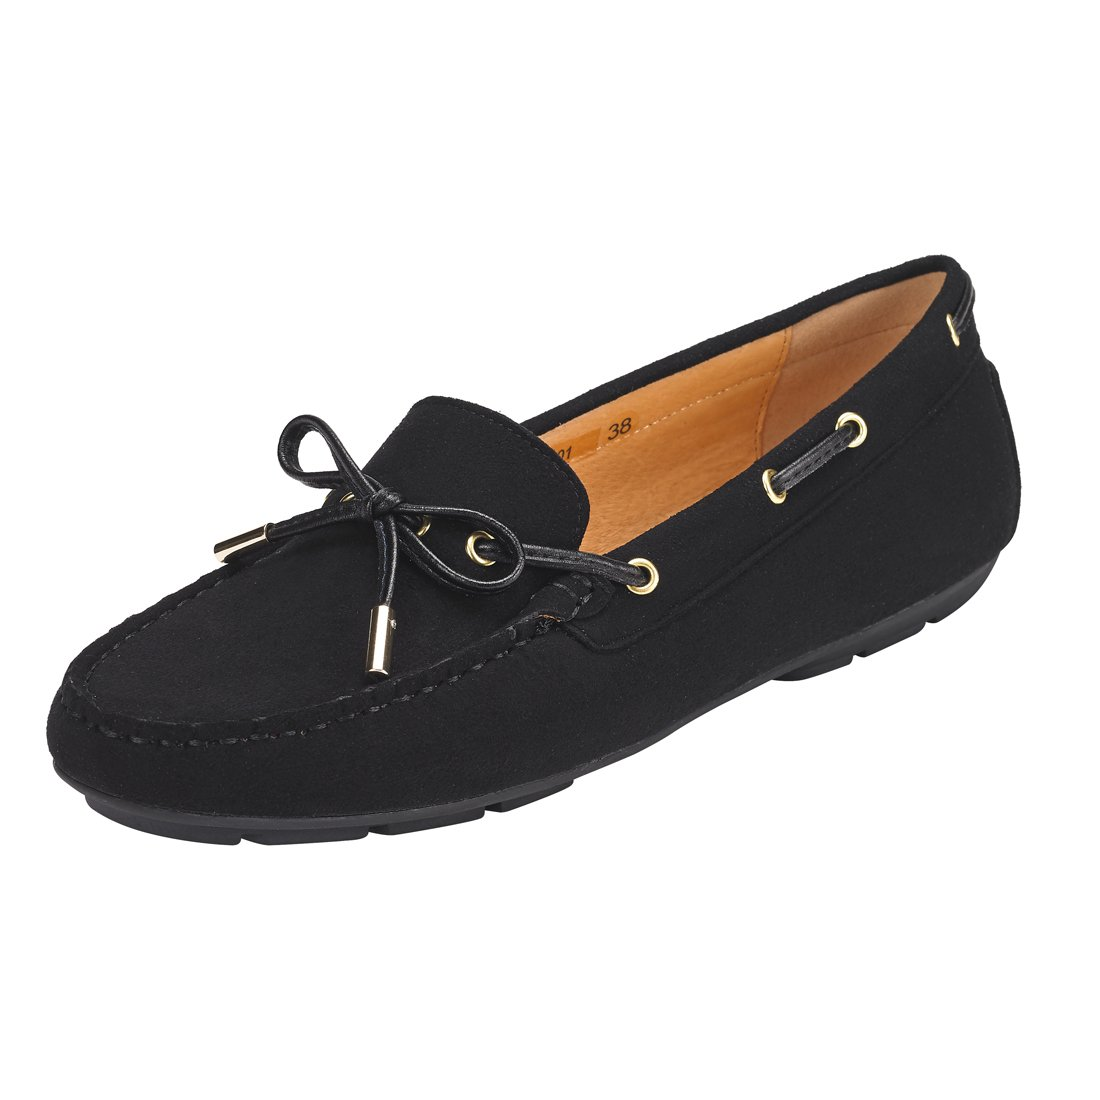 JENN ARDOR Suede Penny Loafers for Women: Vegan Leather Bow Knot Slip-On Driving Moccasins-Black